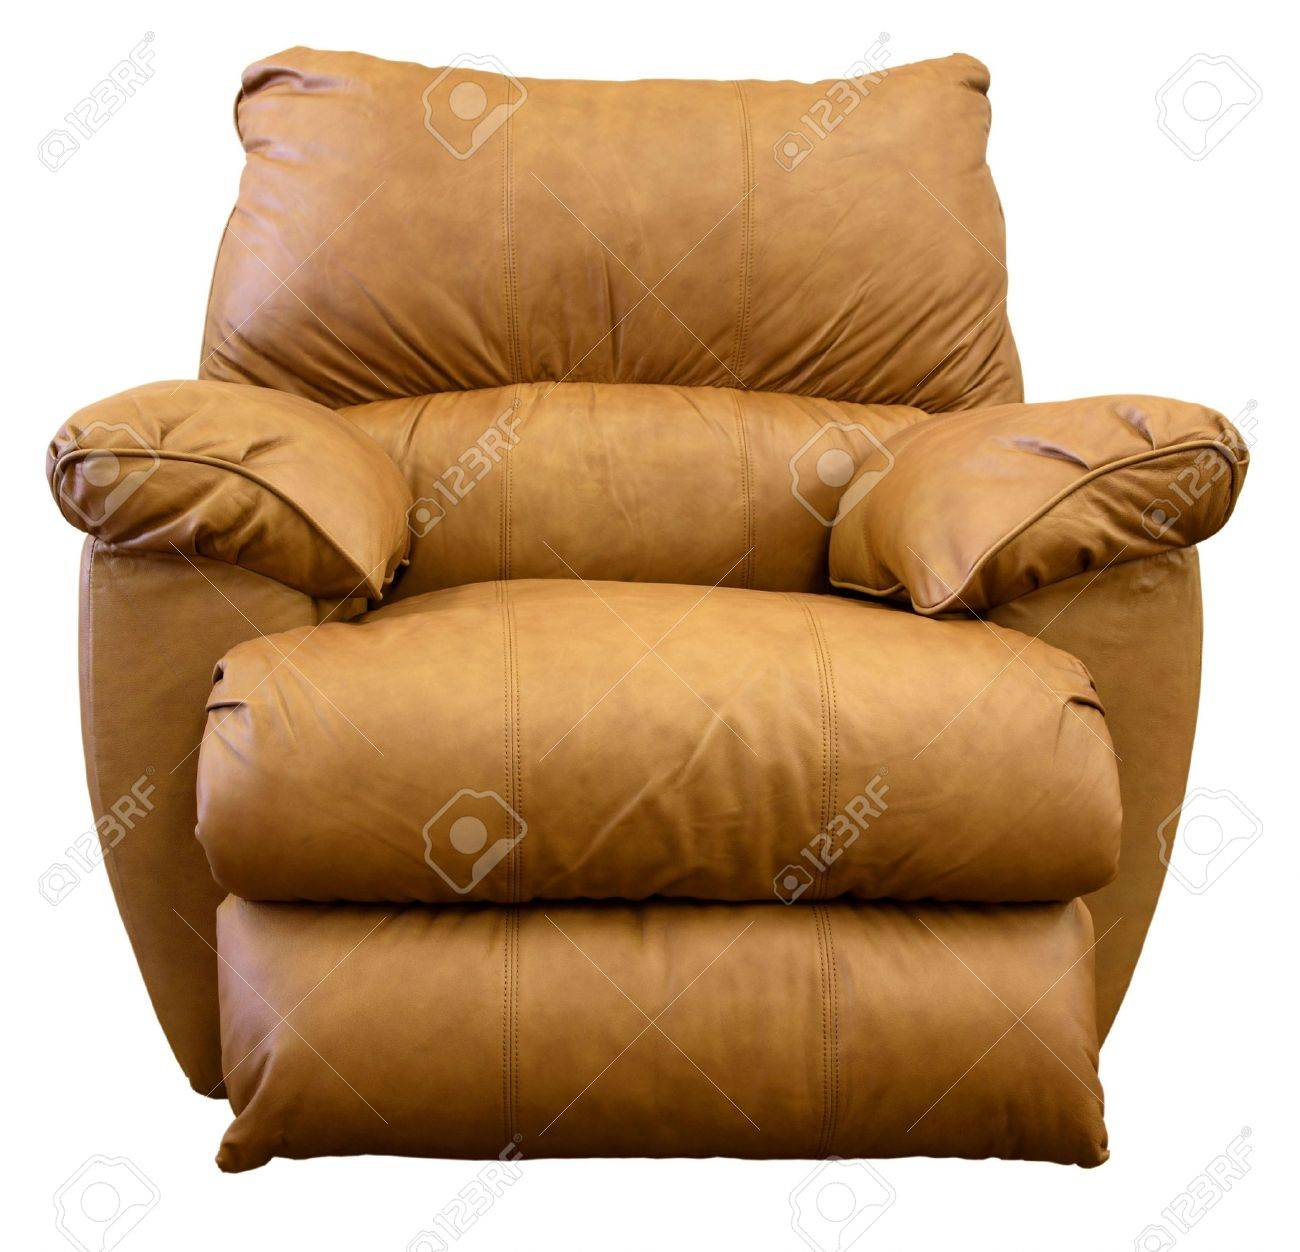 large comfortable overstuffed brown leather rocker recliner stock photo - Leather Rocker Recliner